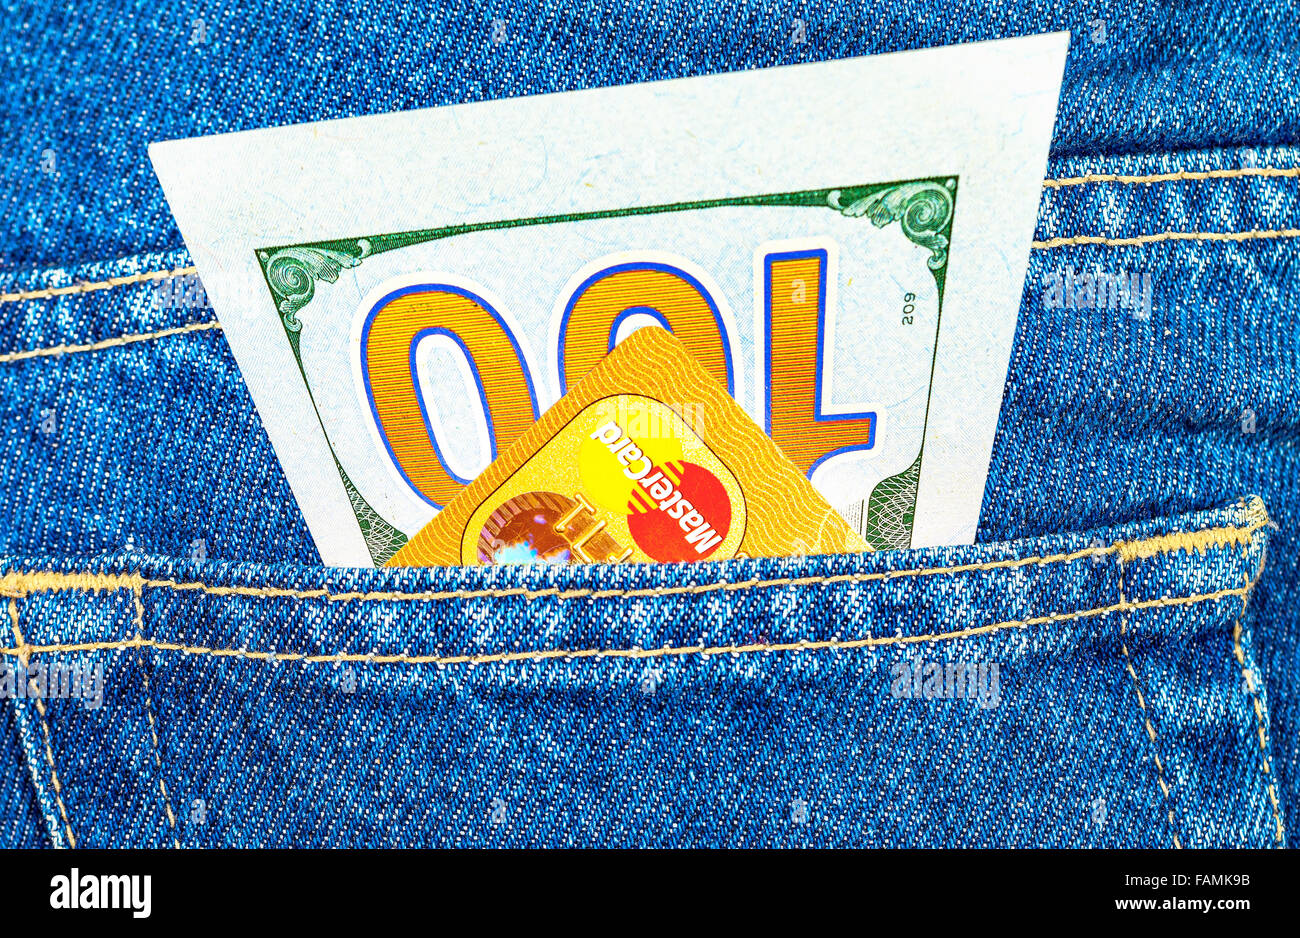 One hundred dollars bill and Credit card MasterCard sticking out of the back jeans pocket - Stock Image